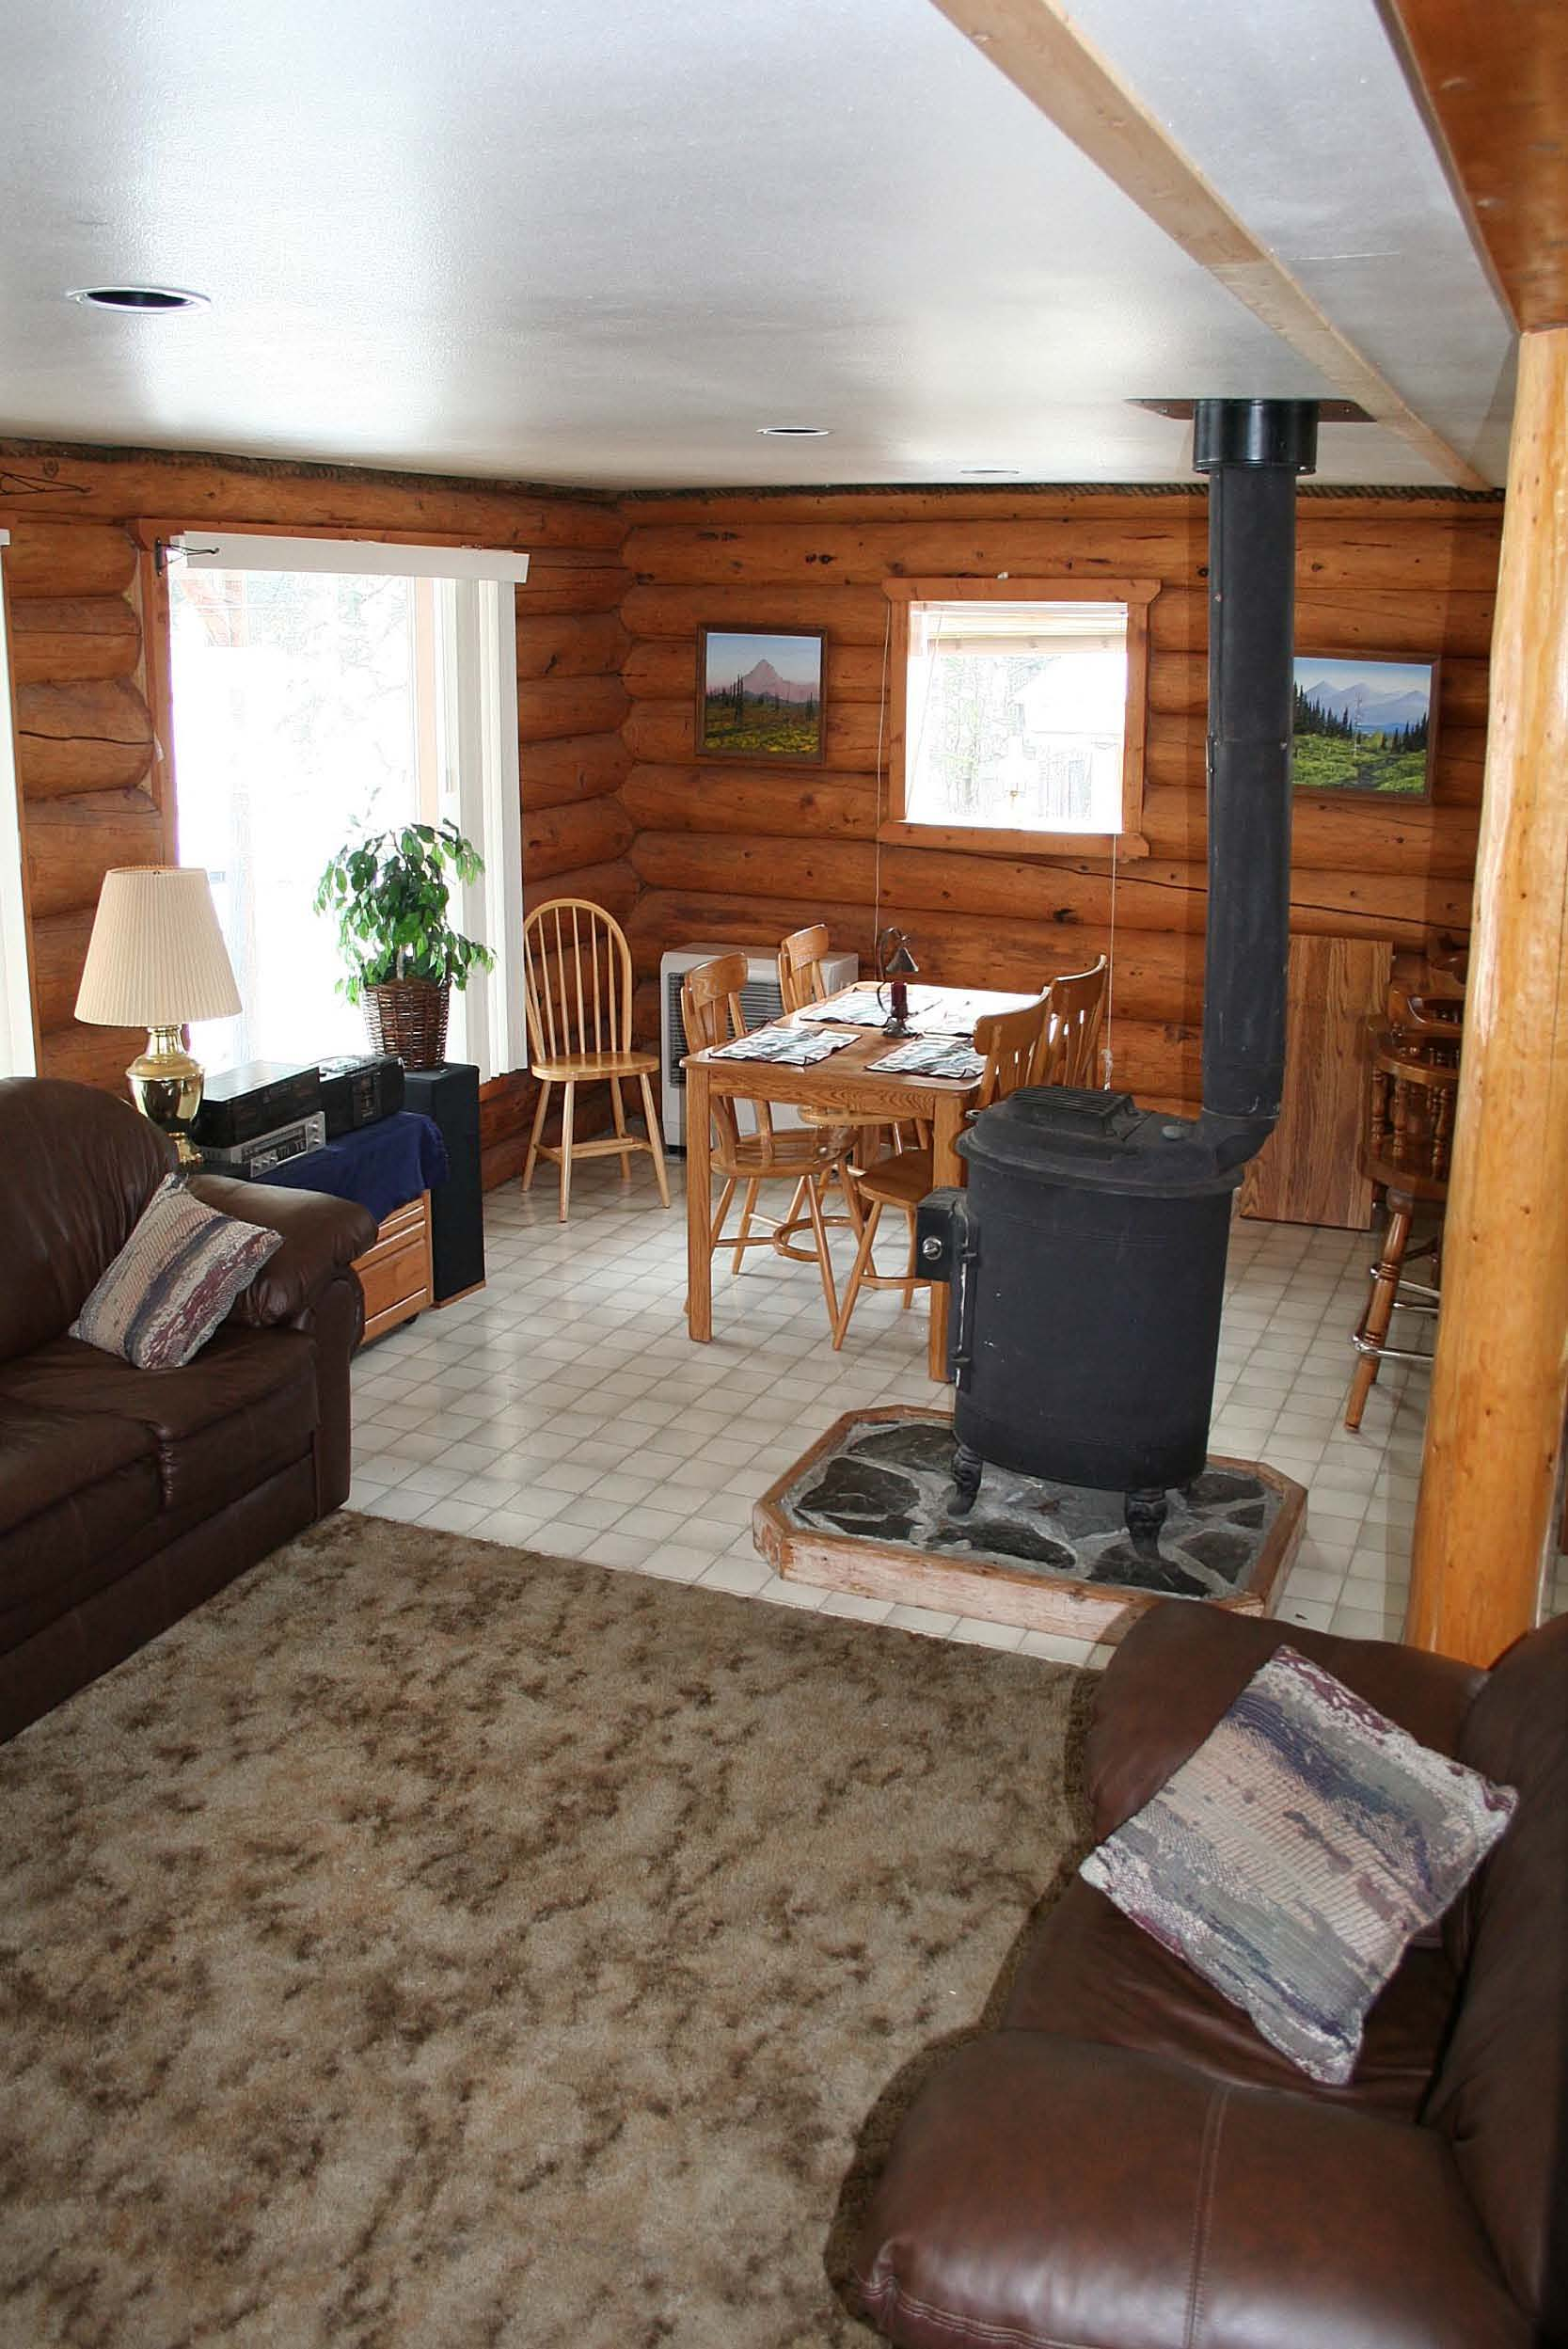 2014 At 1667 2497 In Alaska Rivers Company Big House Inside